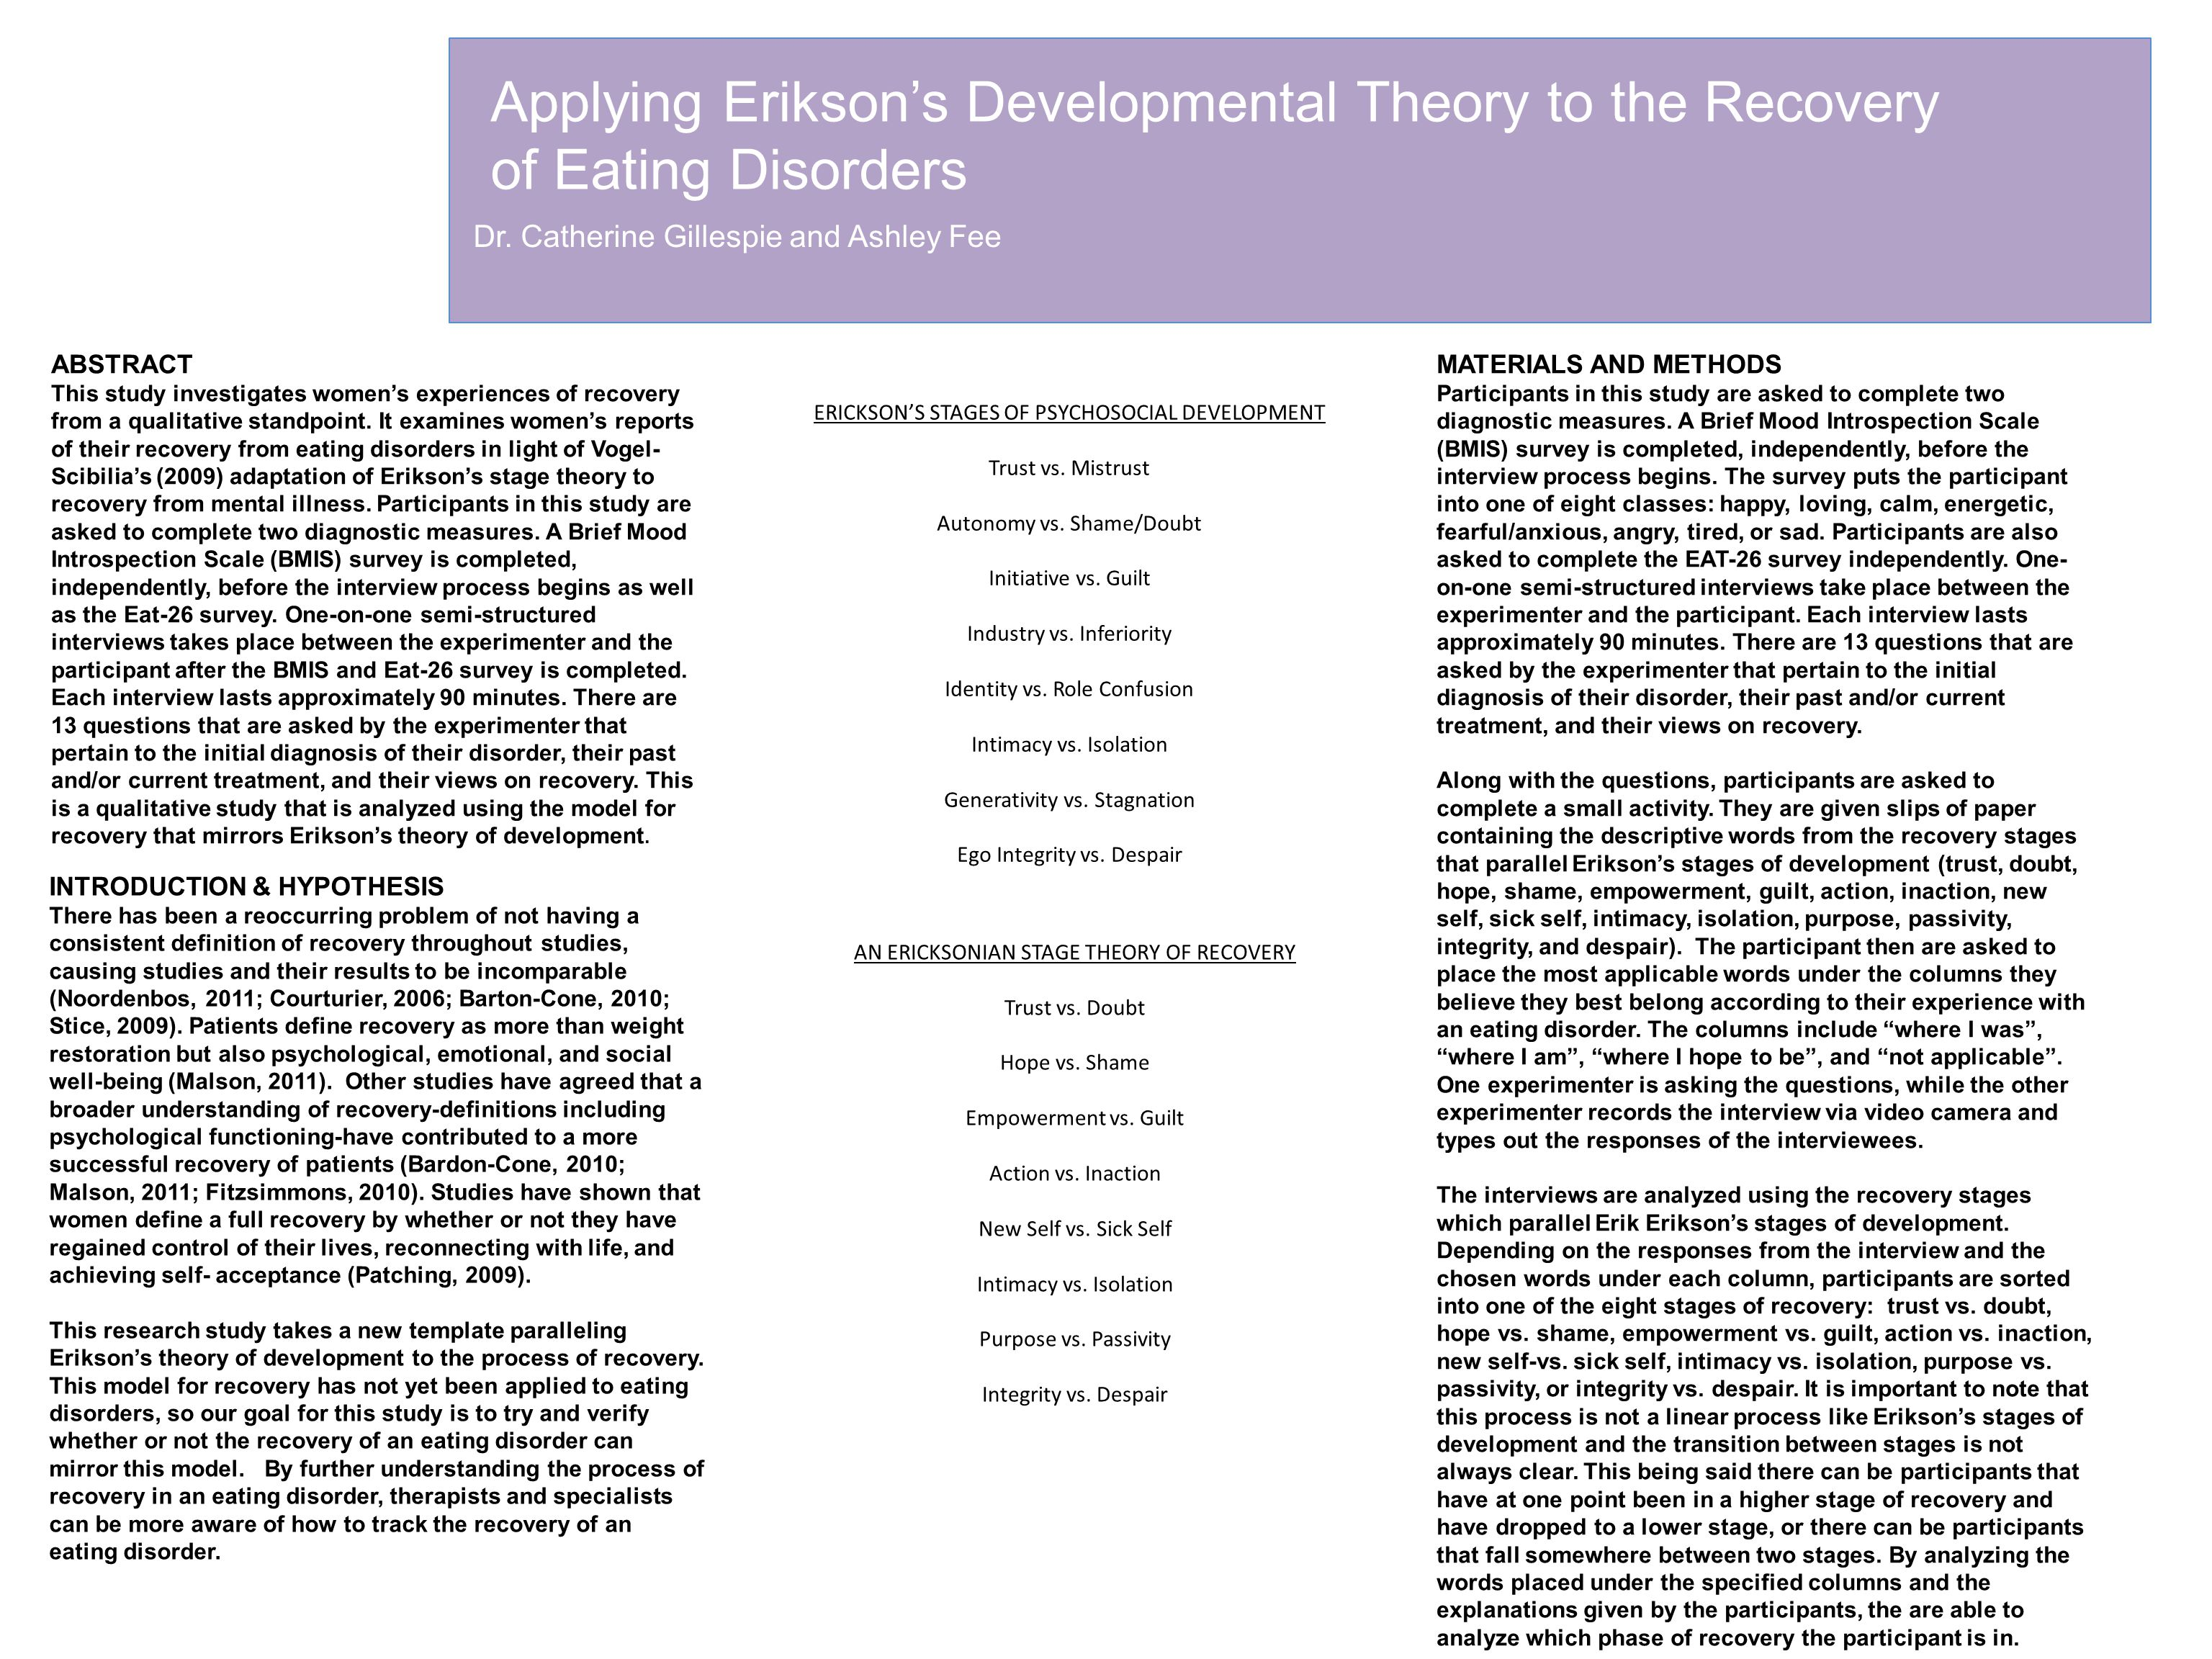 Applying Erikson's Developmental Theory to the Recovery of Eating Disorders